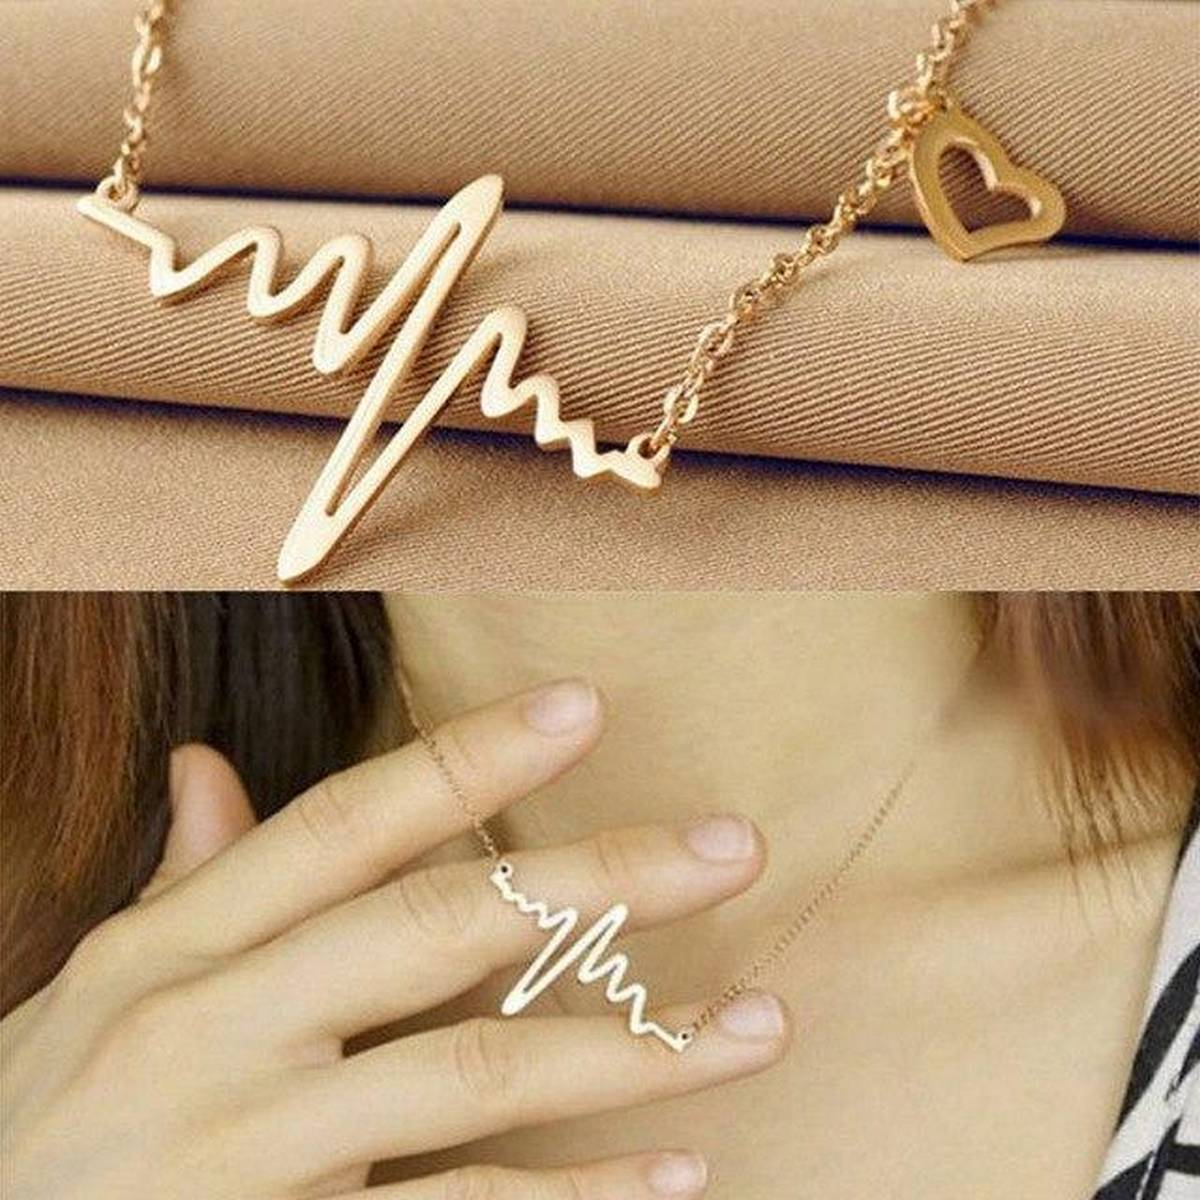 Gold Color Ecg Heart Shaped Necklace Chain For Women